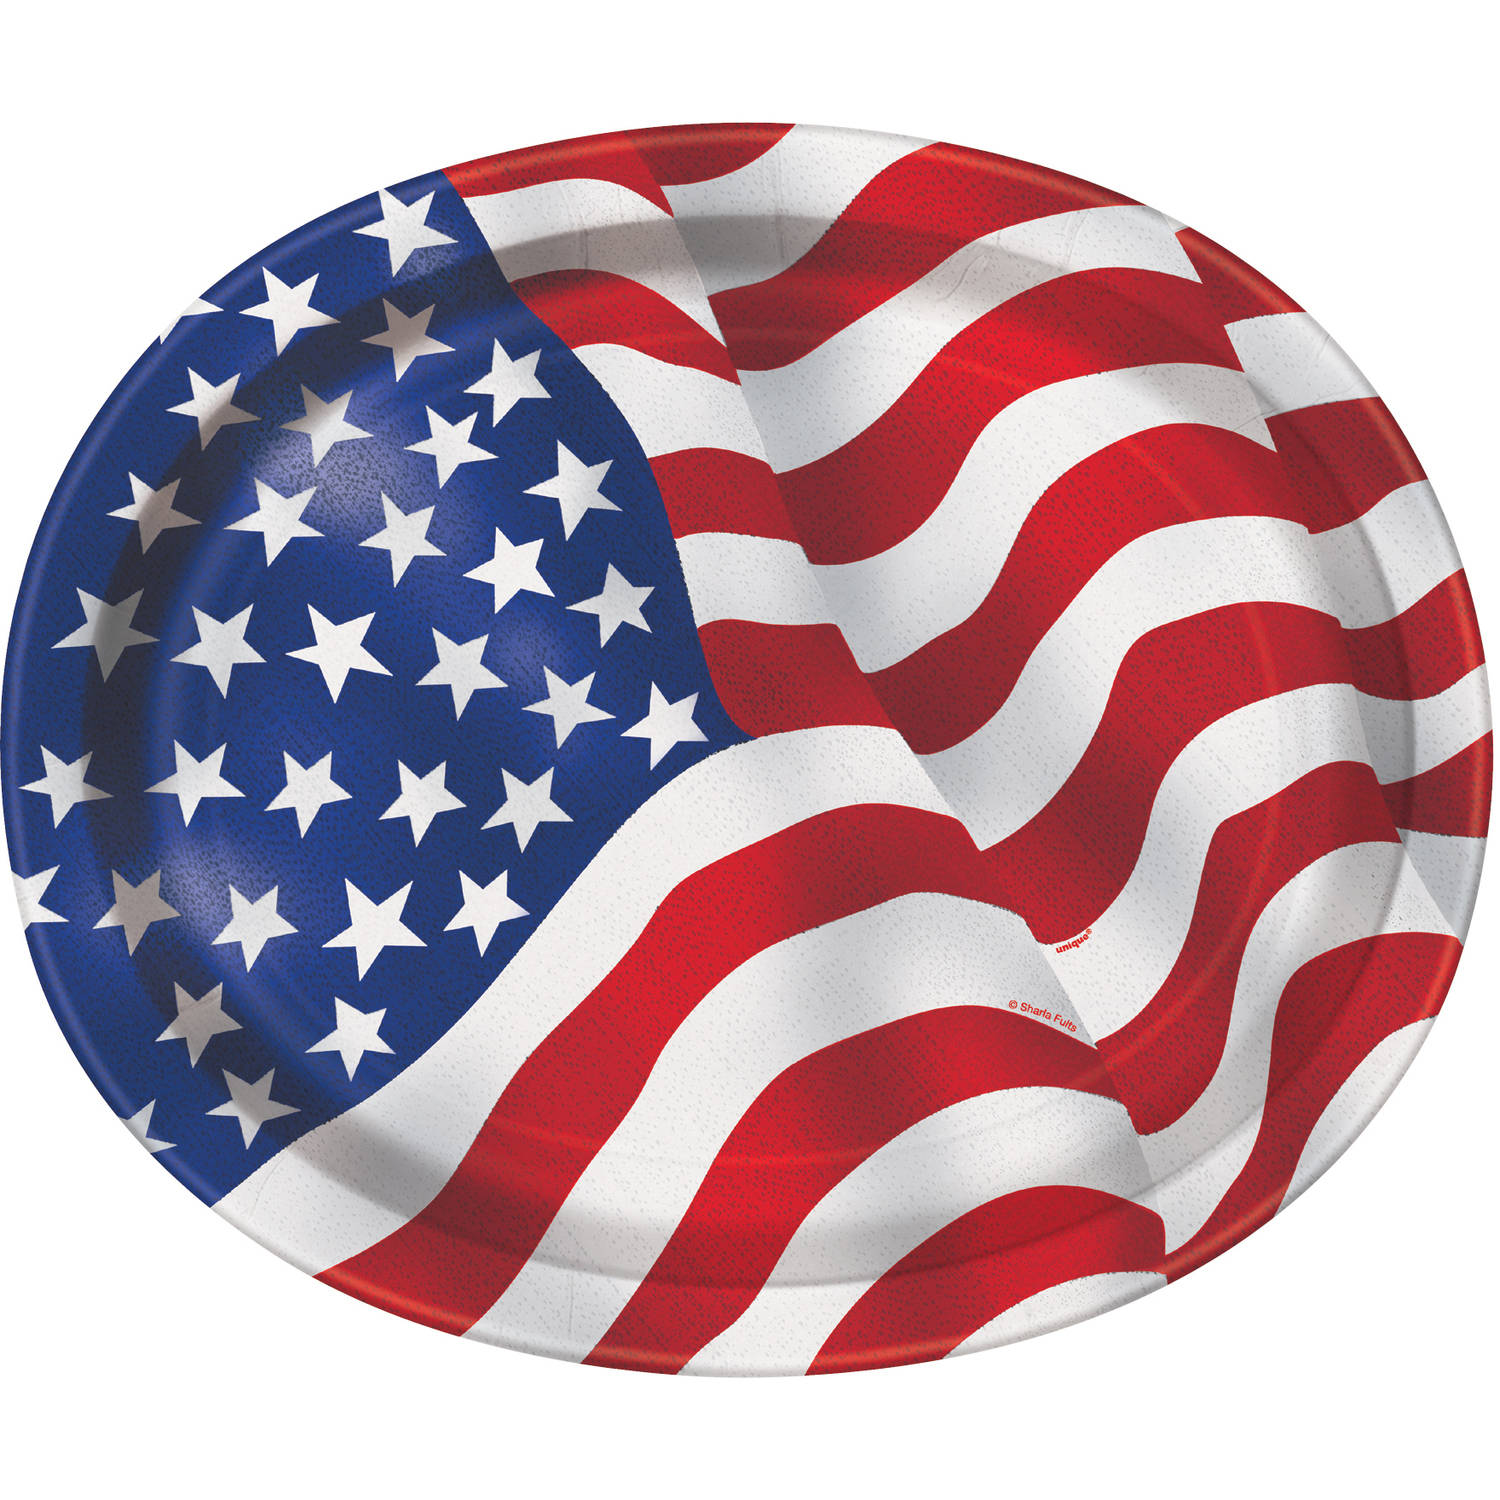 US American Flag Oval Paper Plates 12 in 8ct  sc 1 st  Walmart.com & US American Flag Oval Paper Plates 12 in 8ct - Walmart.com